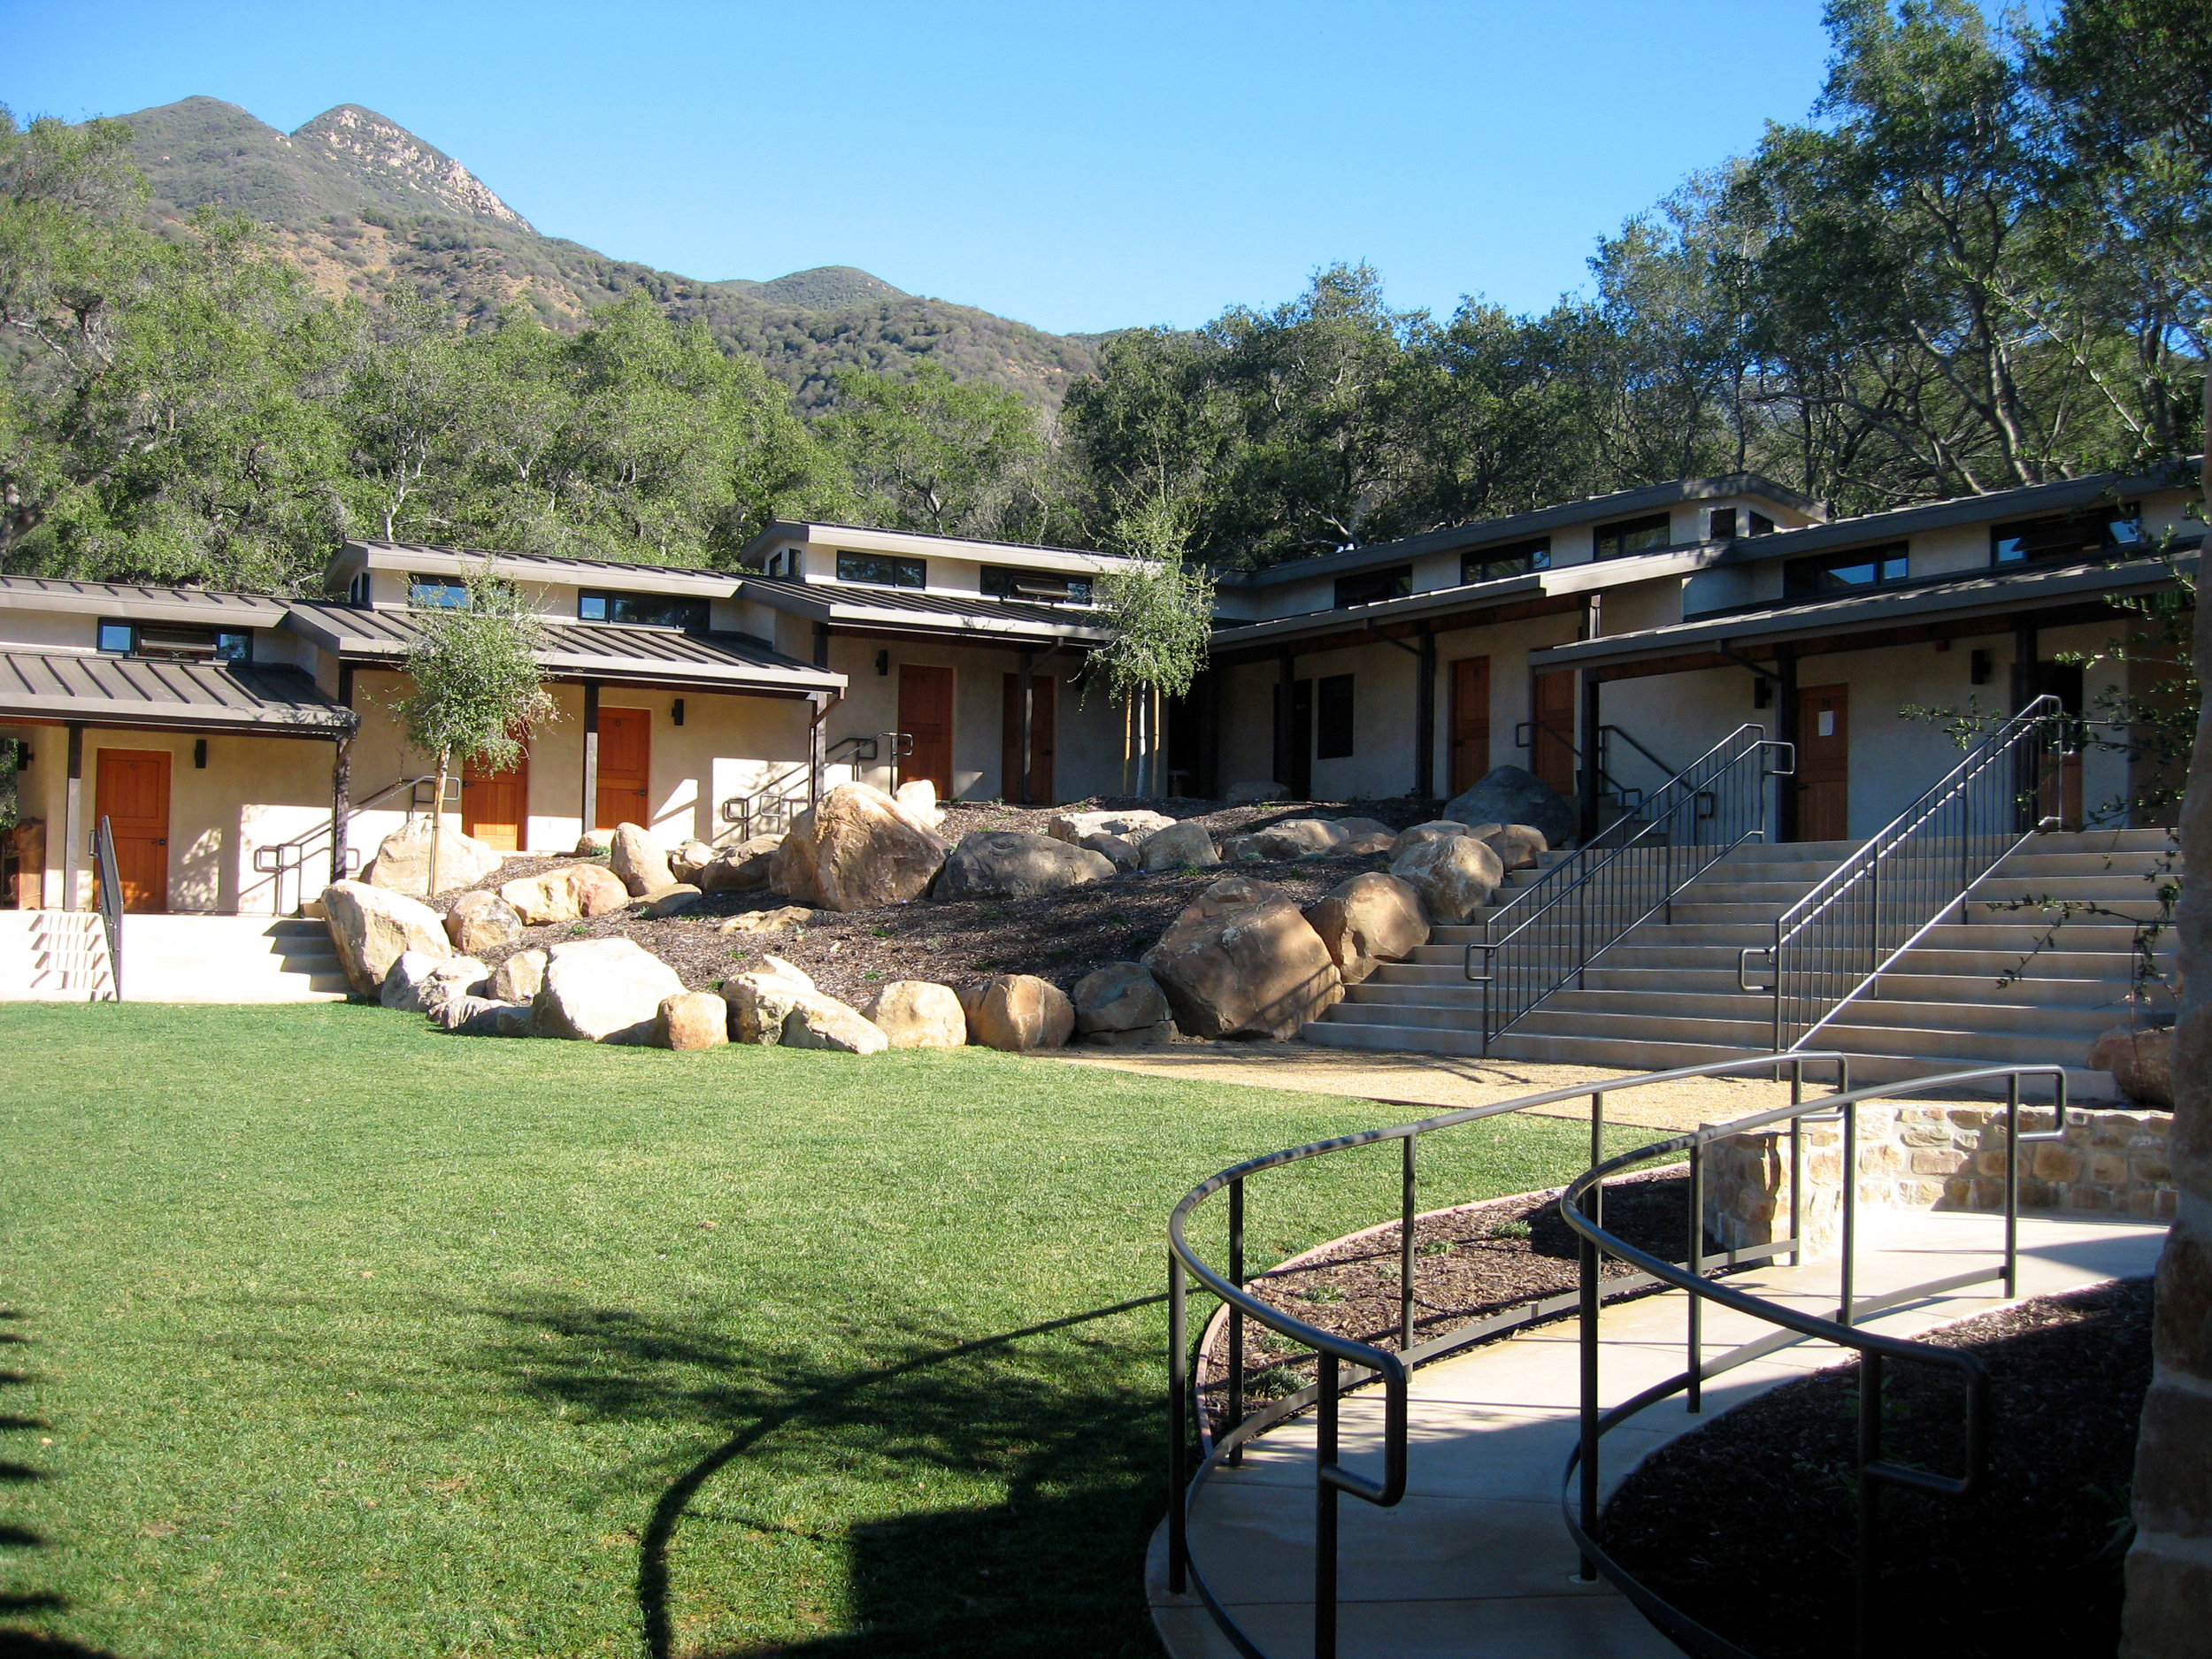 S.E.A.-Studio-Environmental-Architecture-David-Hertz-FAIA-Thacher-School-Dormitory-Ojai-sustainable-regenerative-restorative-green-design-educational-institutional-campus-master-plan-rustic-Ventura-mountain-scenic-biophilic-retreat-modern-ranch-10.jpg